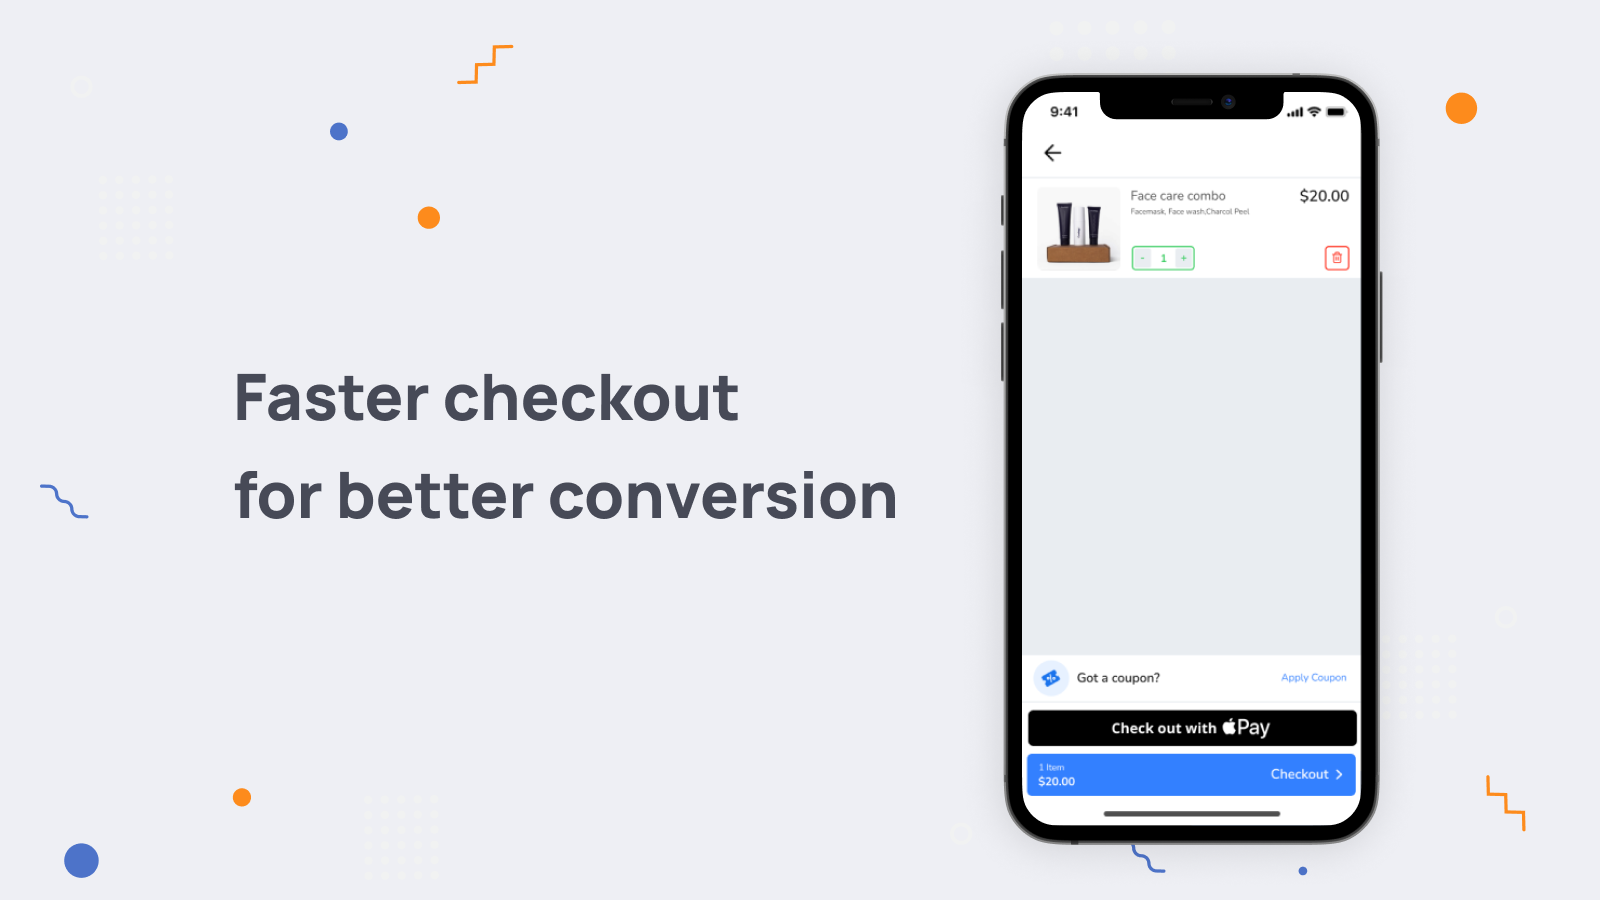 Faster checkout